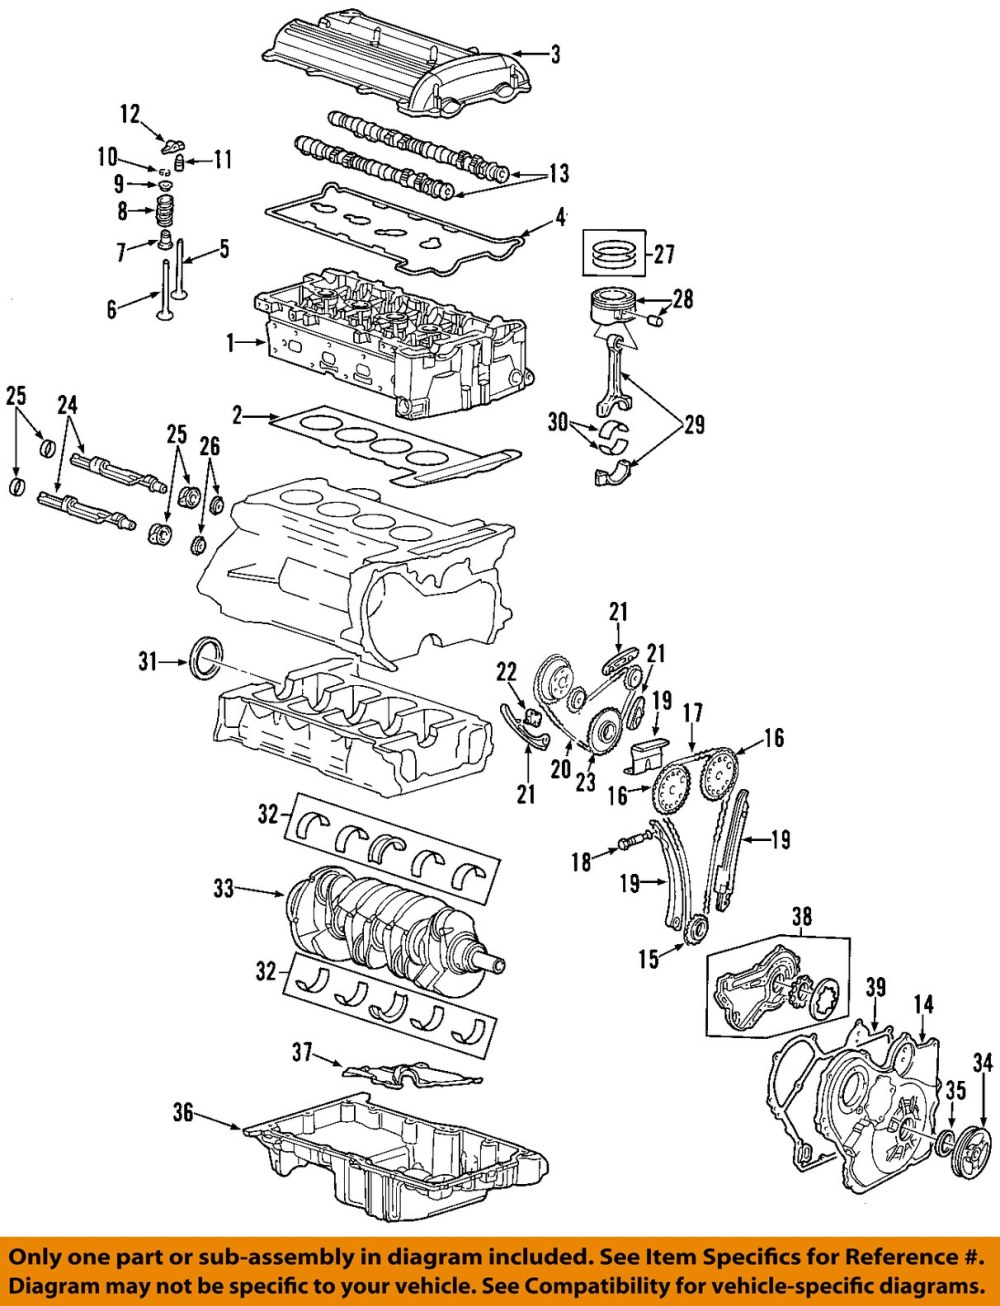 medium resolution of saturn 2 2 engine diagram wiring diagrams value 2006 saturn vue 2 2 engine diagram wiring